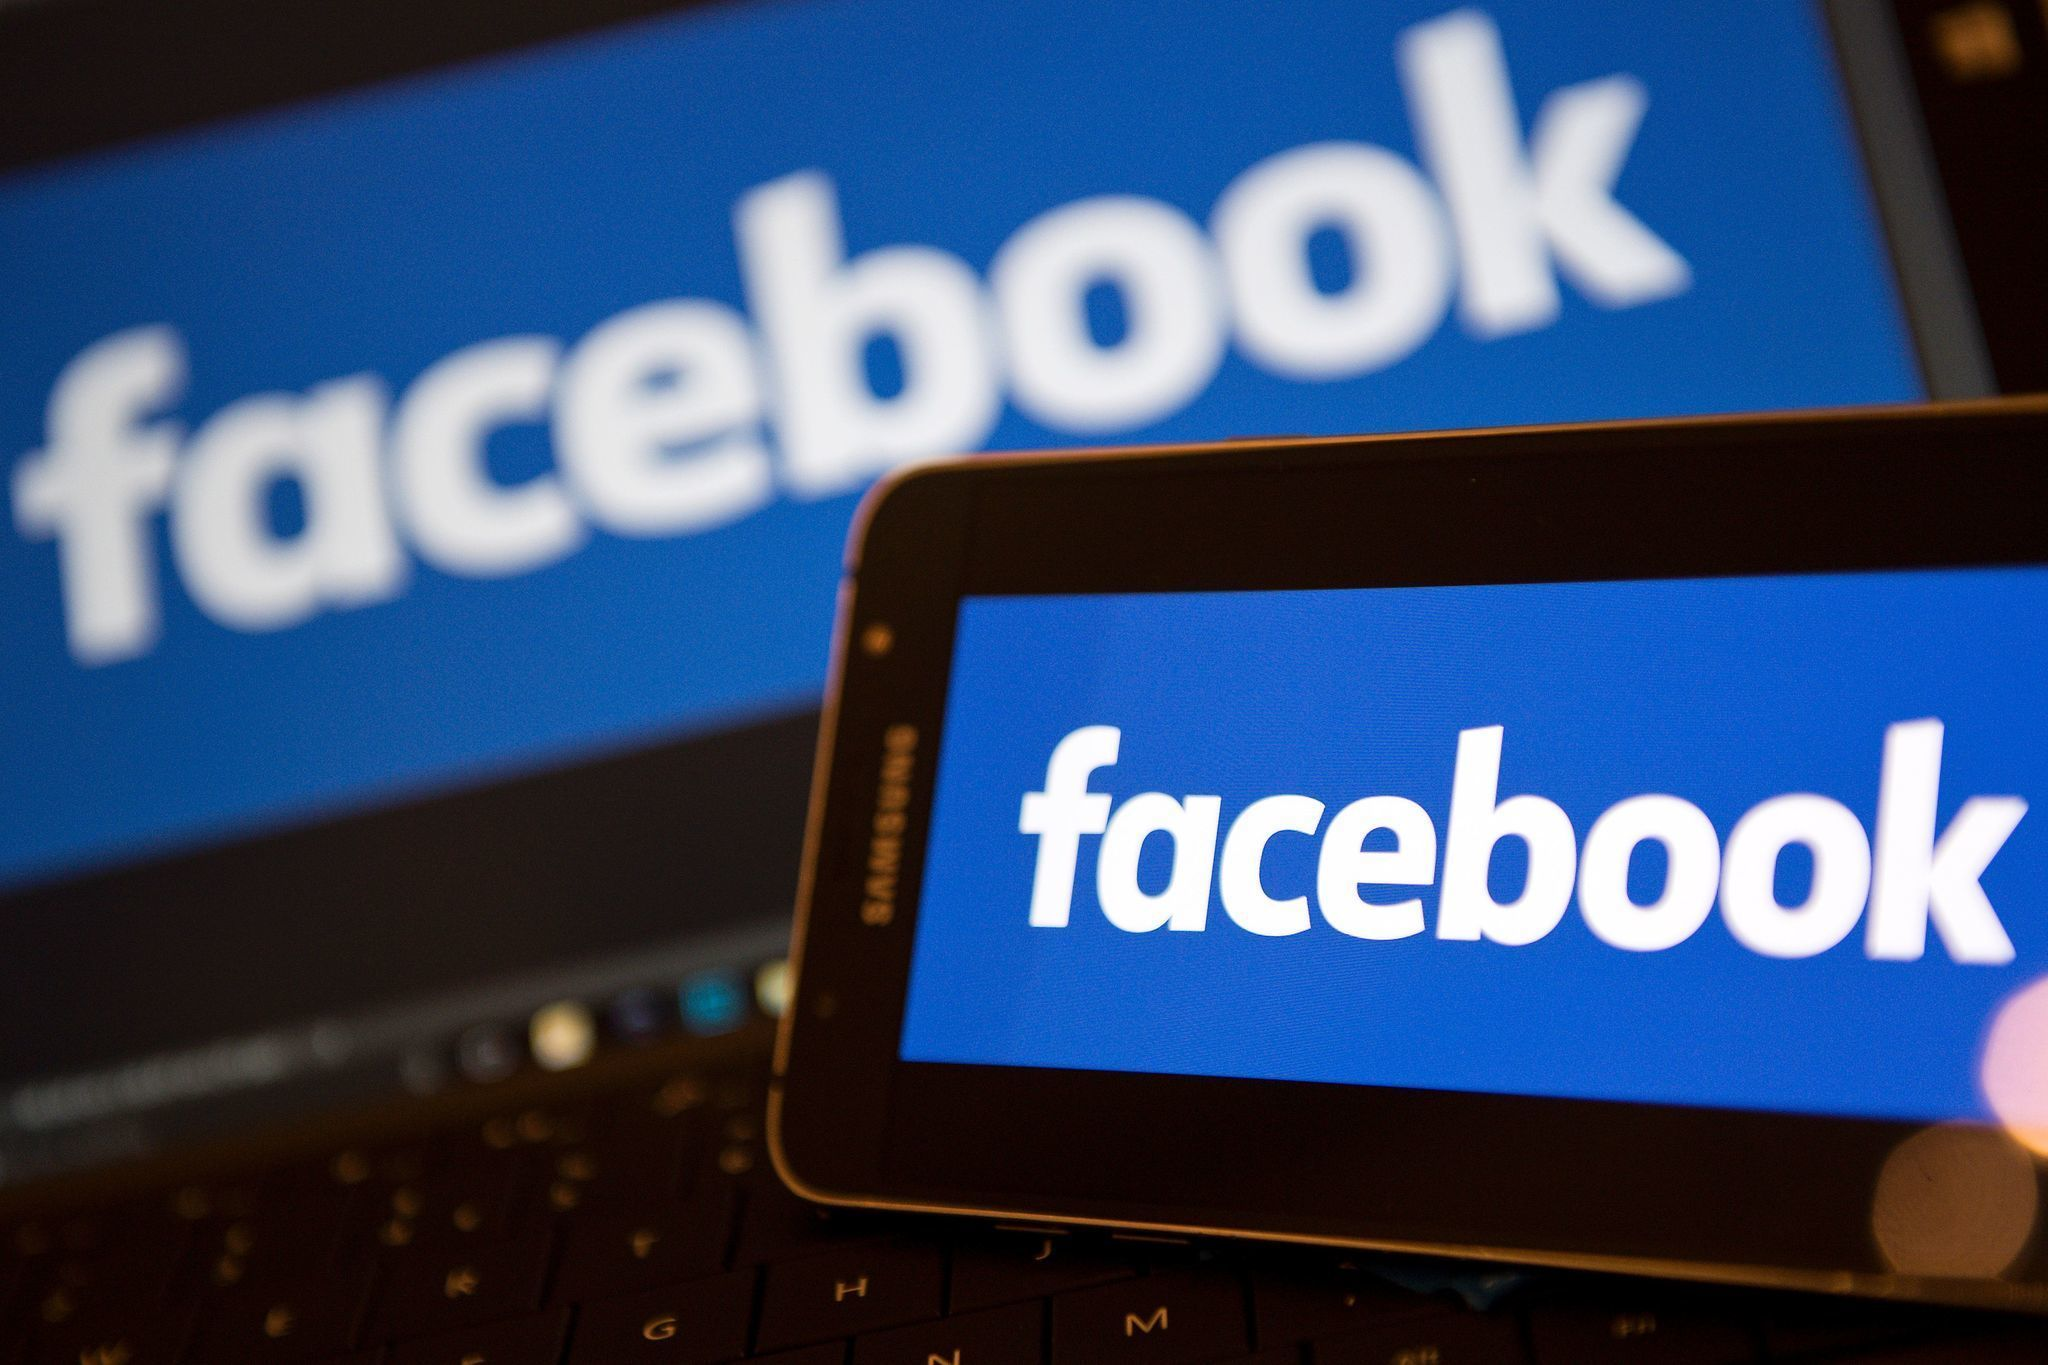 facebook wants to help you a job even if you re not looking facebook wants to help you a job even if you re not looking for one chicago tribune